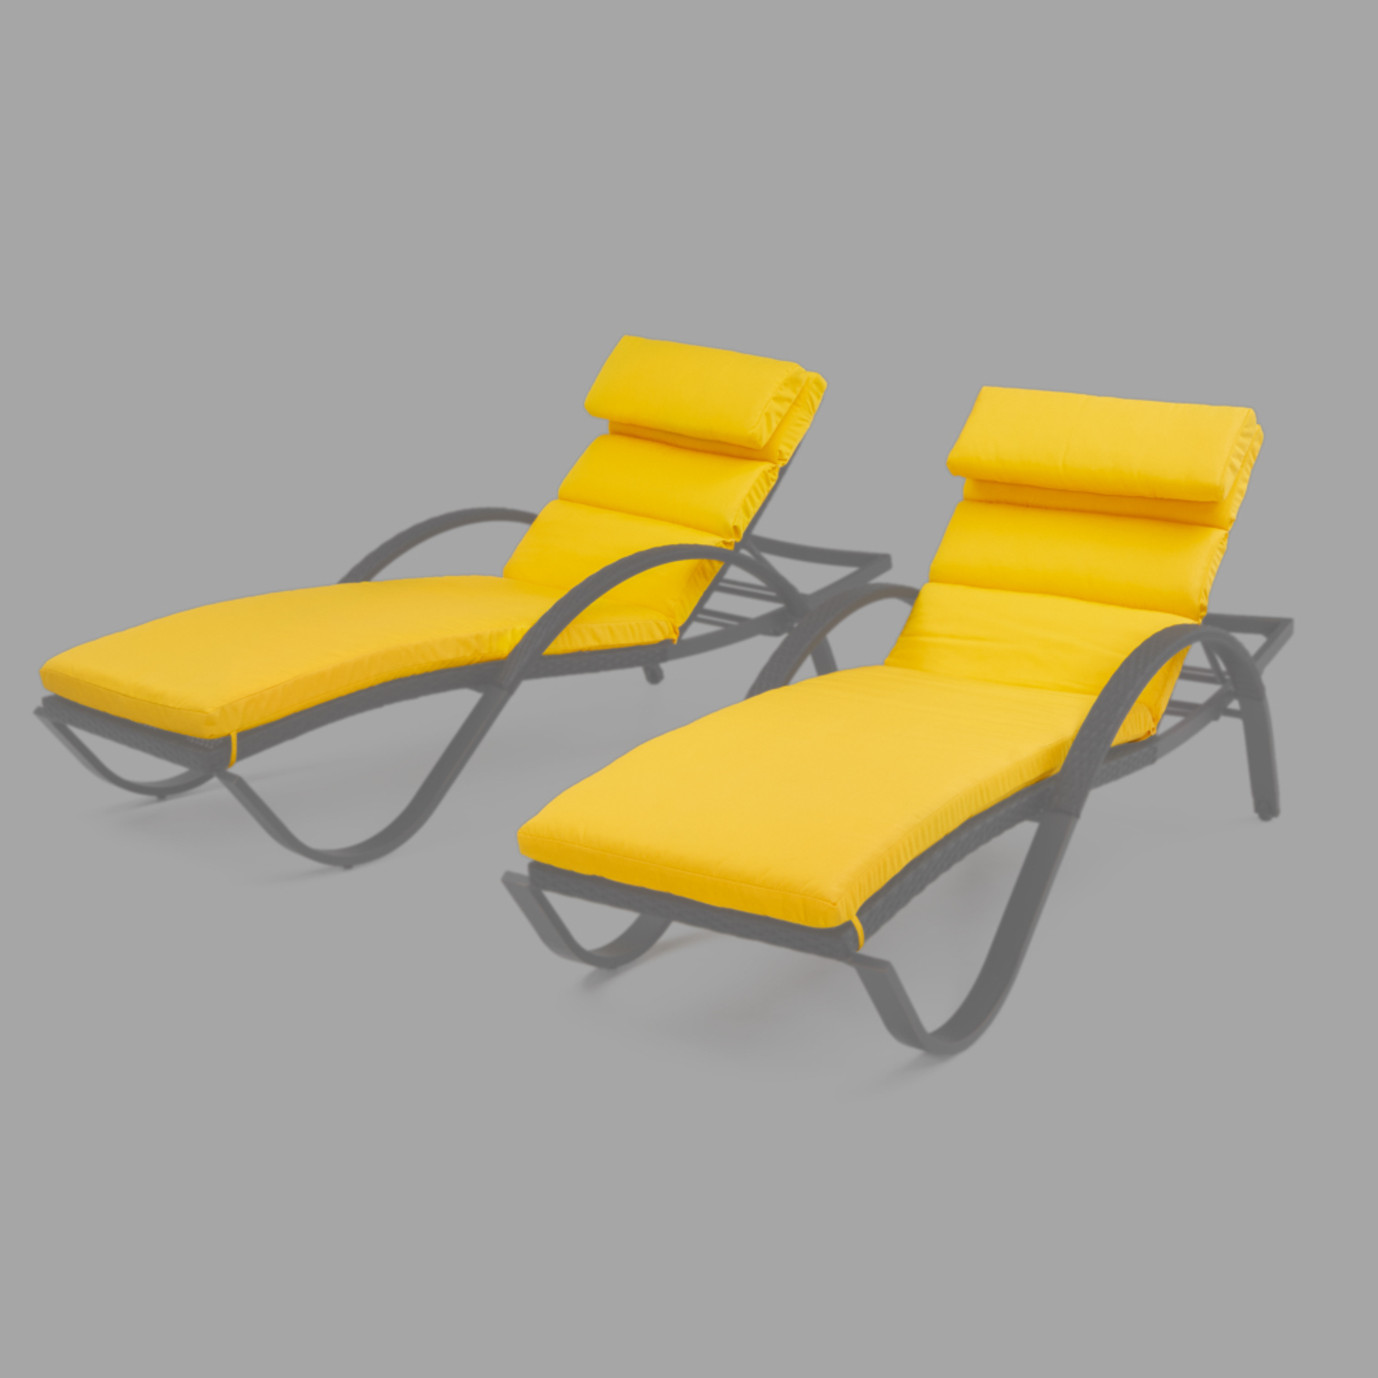 Modular Outdoor Chaise Lounge Cushions